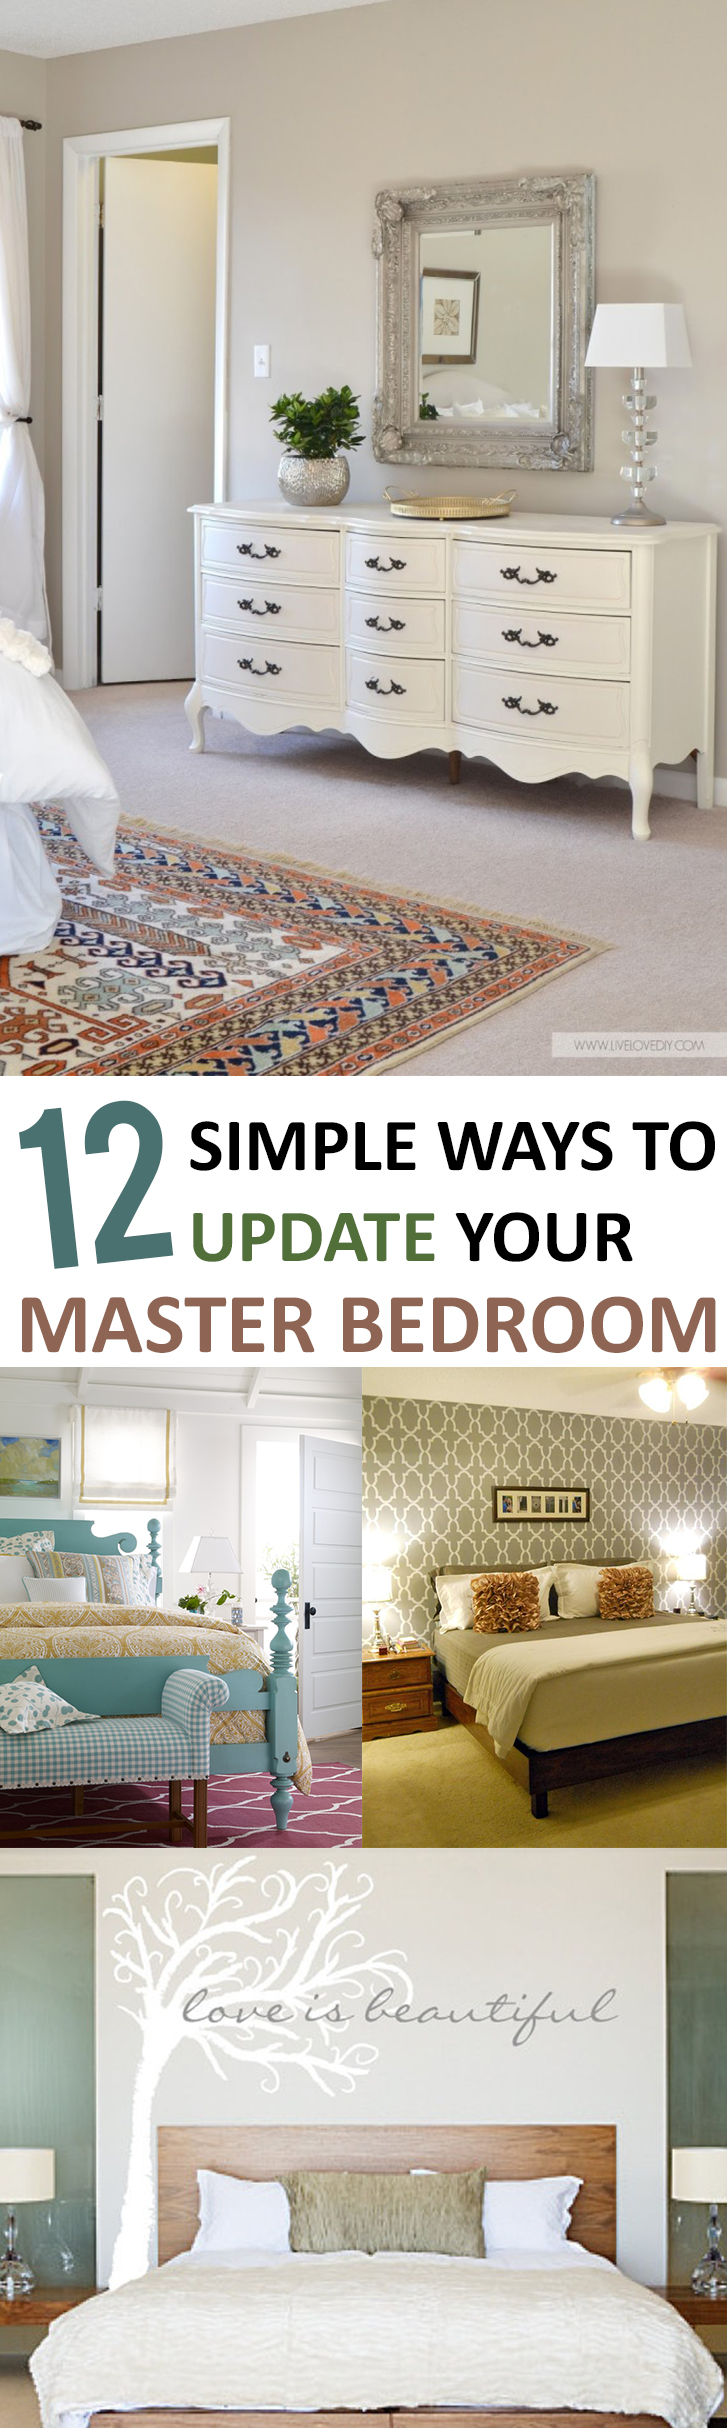 12 Simple Ways to Update Your Master Bedroom